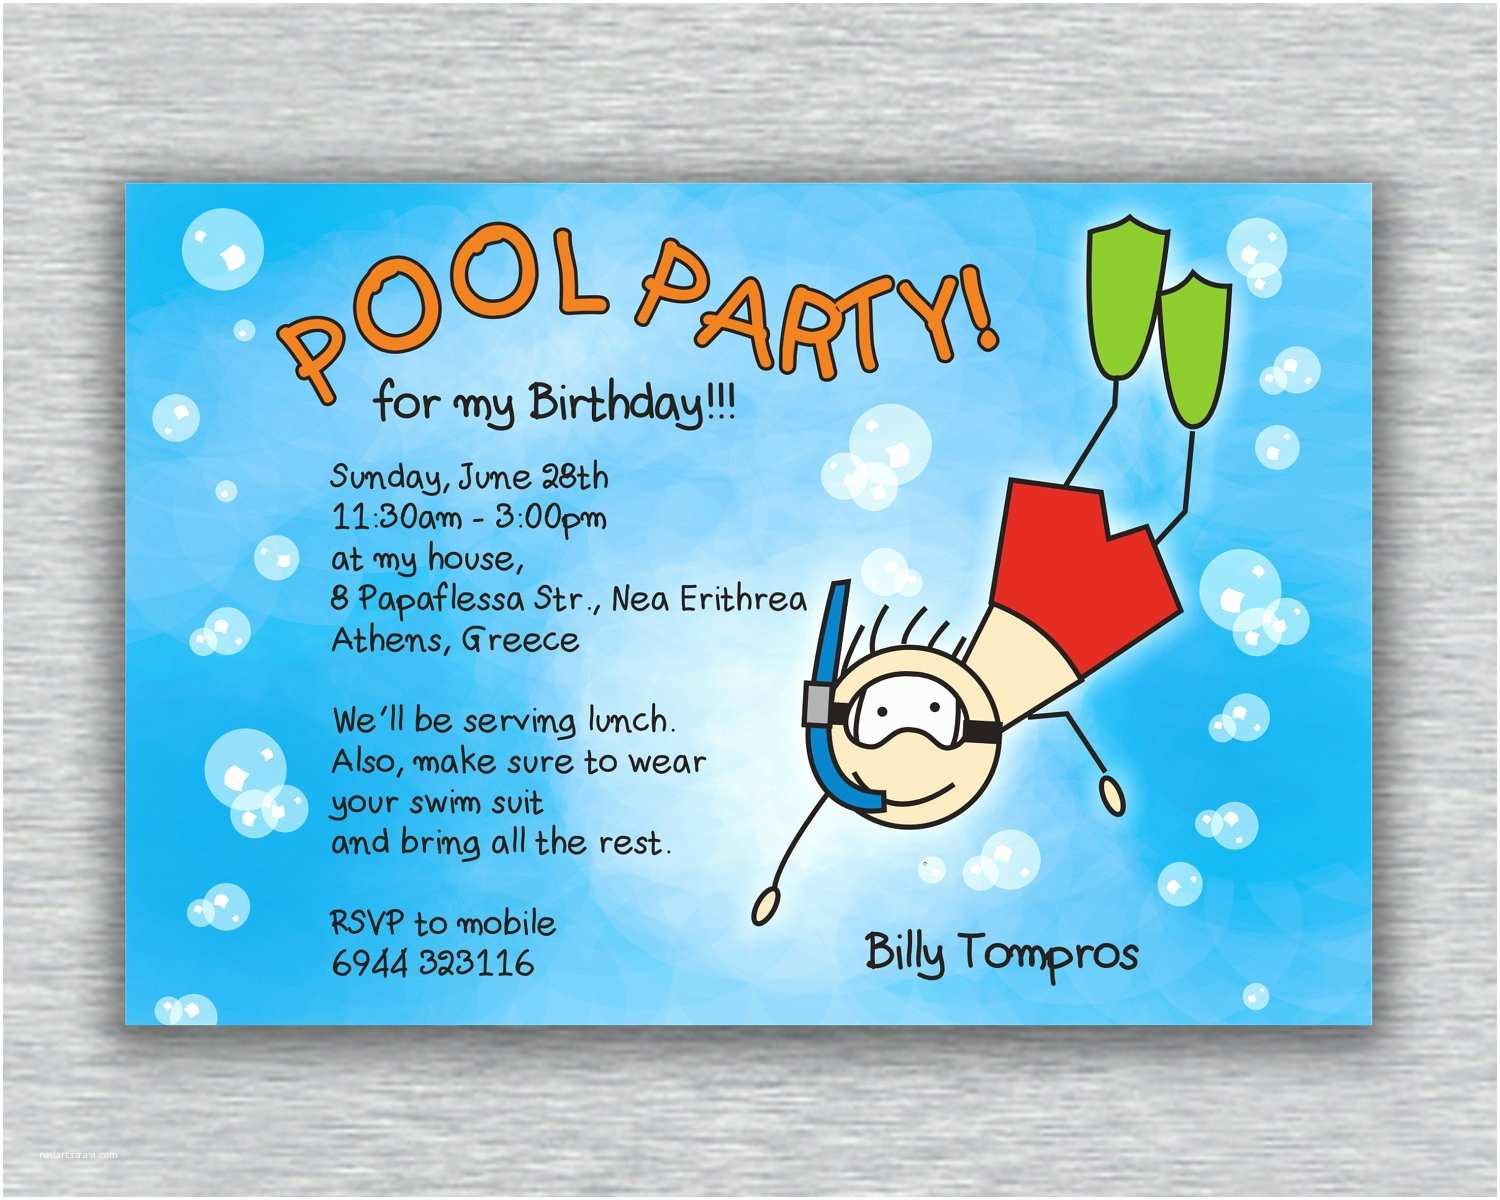 Pool Party Invitation Wording Stunning Birthday Invitations You Can Modify